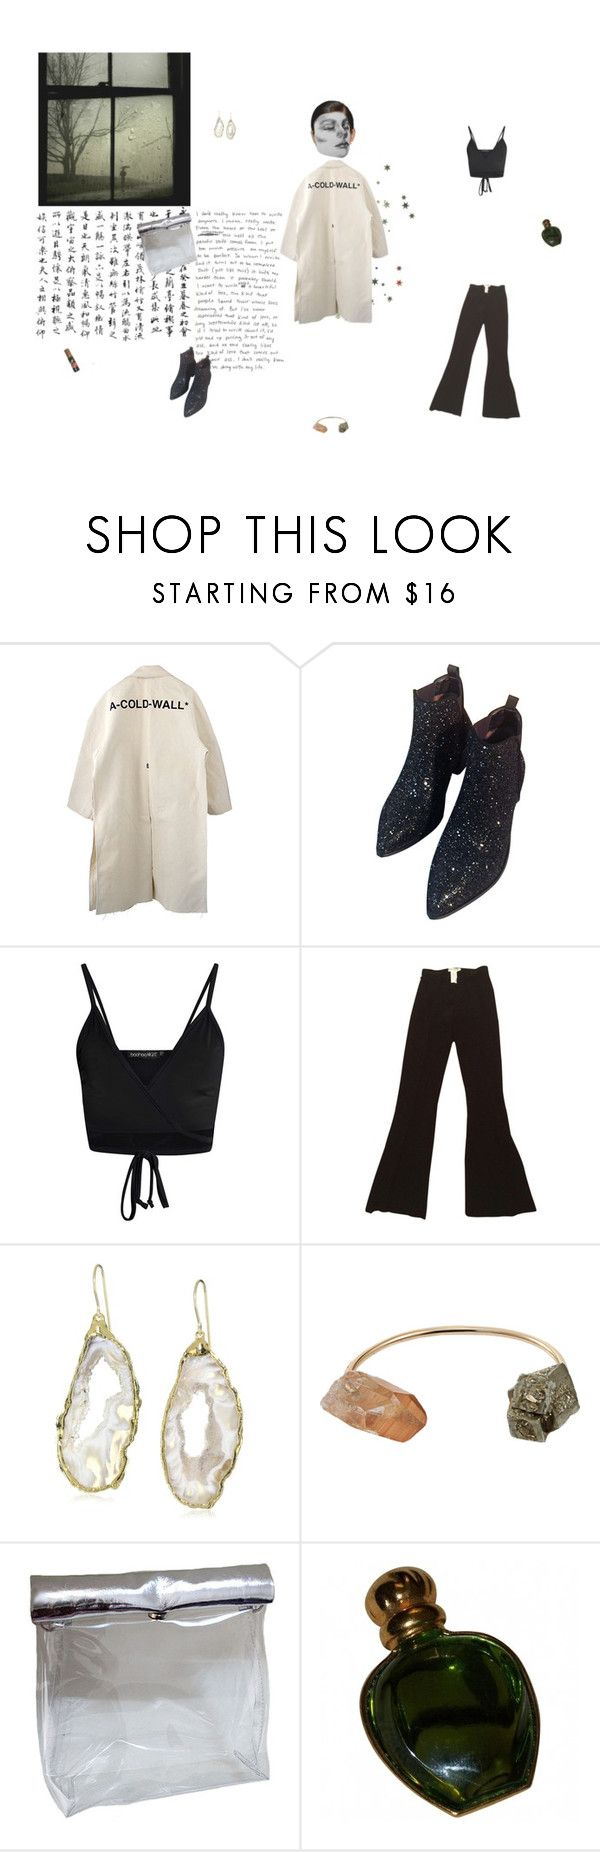 """when in tokio"" by lisleysharond ❤ liked on Polyvore featuring WALL, WithChic, Boohoo, Sonia Rykiel, Heather Gardner, Seraphine Designs, Christian Dior, red flower, jp and tokio"